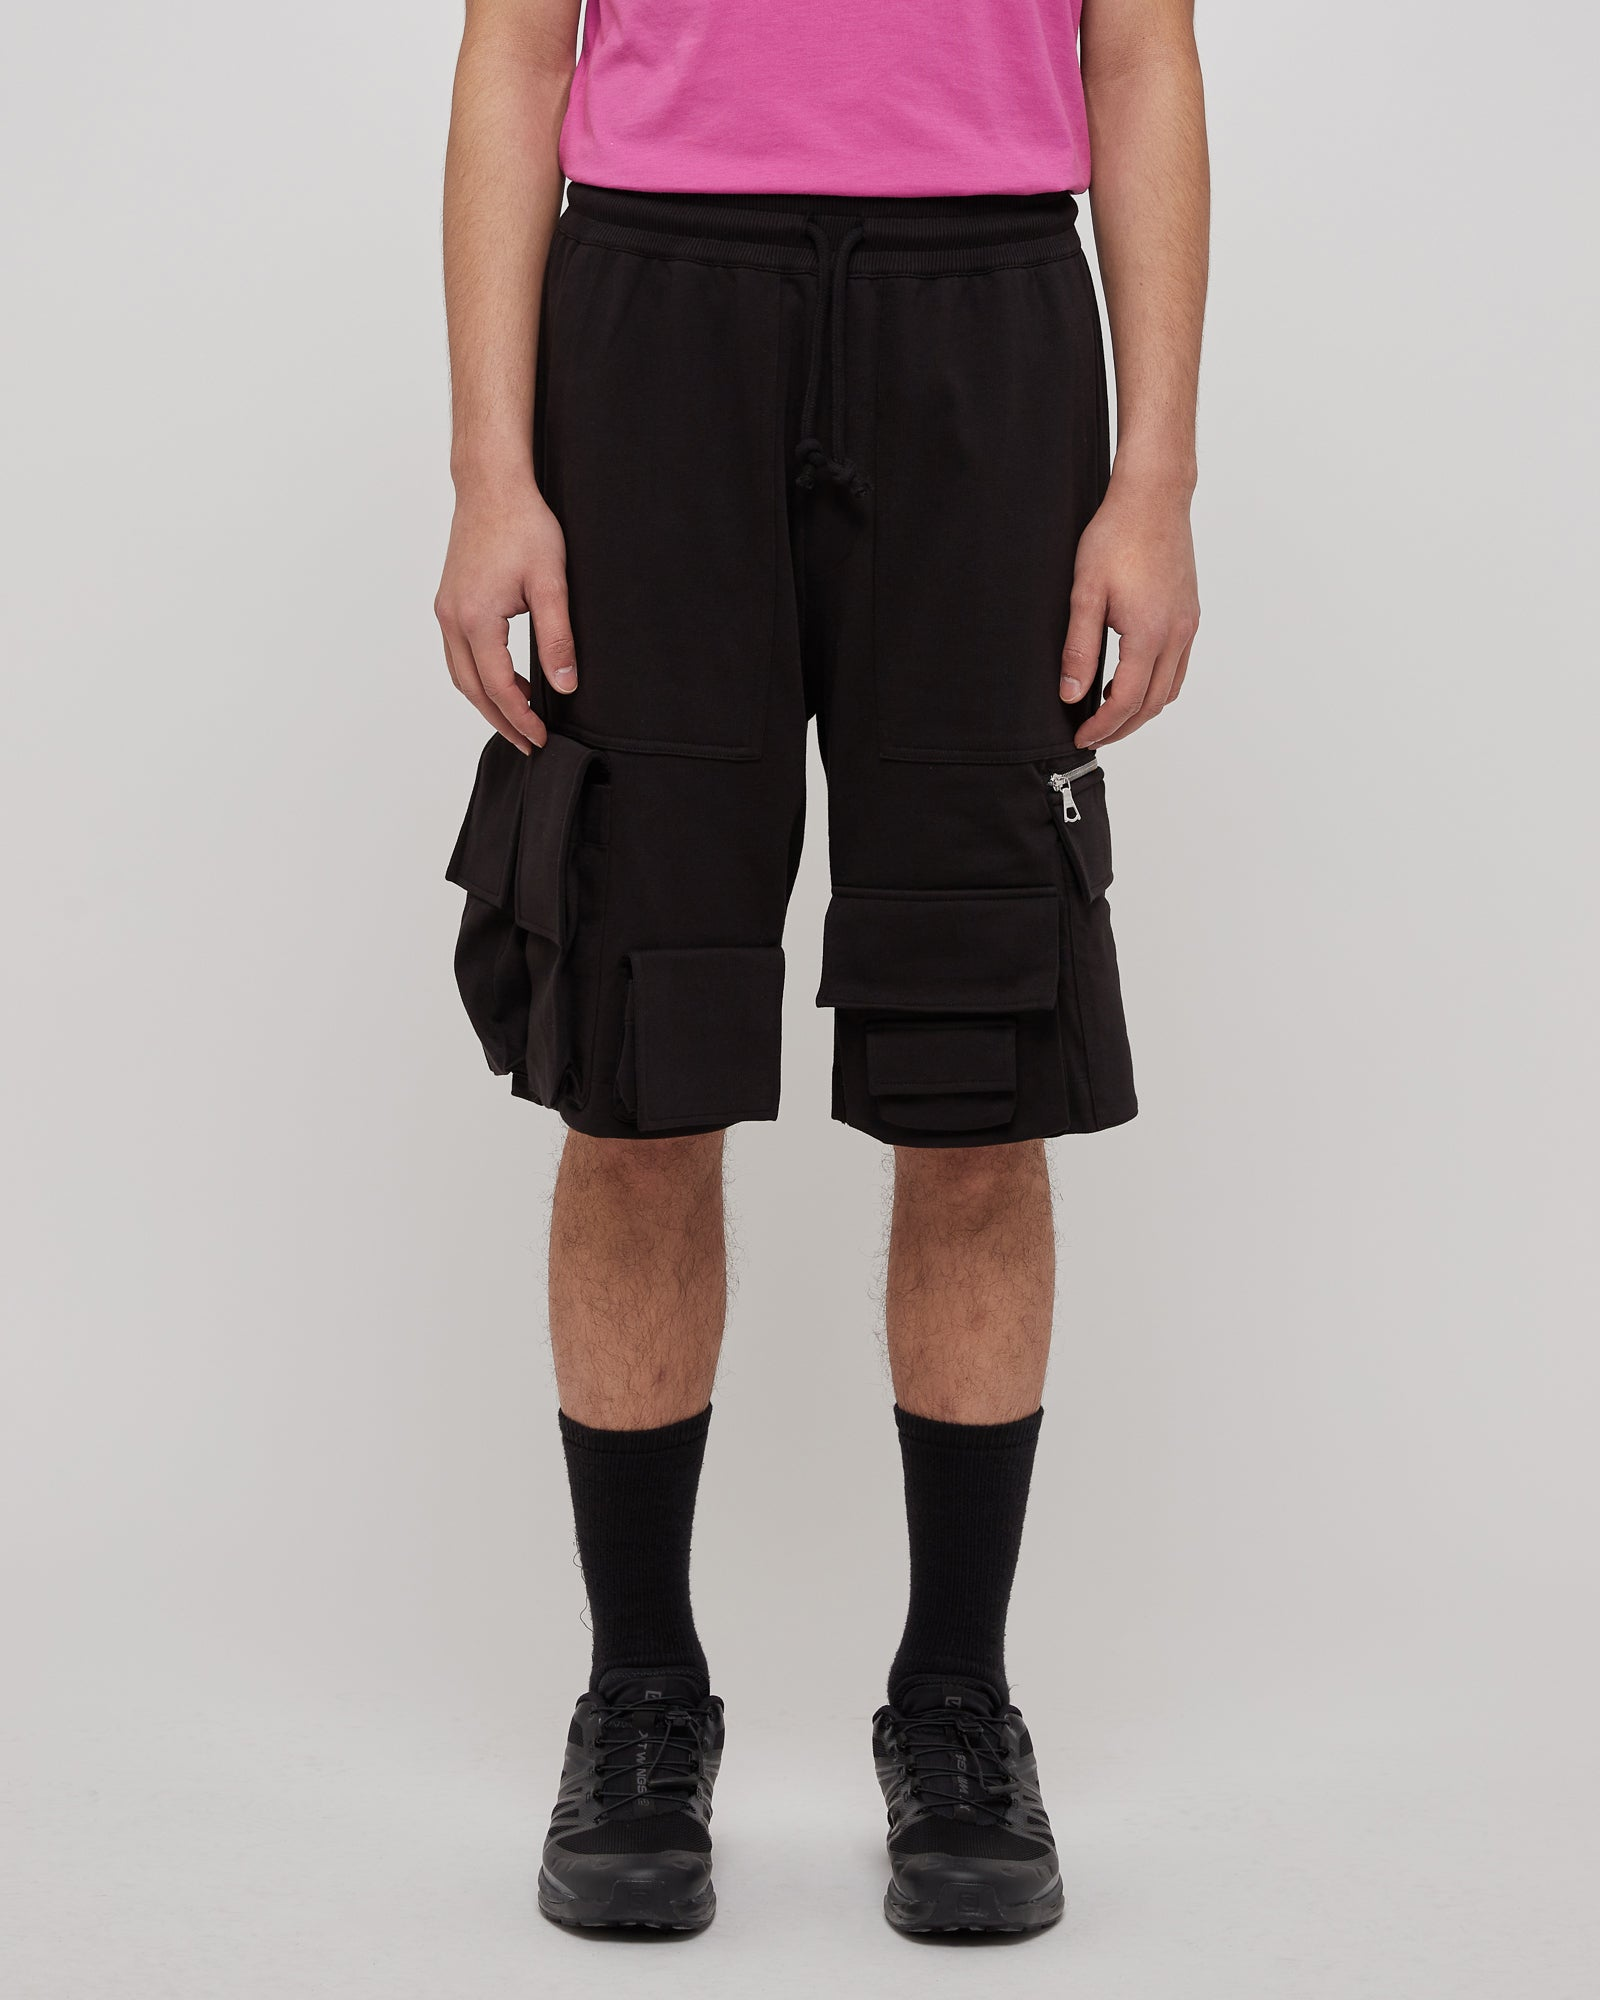 Hokan Shorts in Black